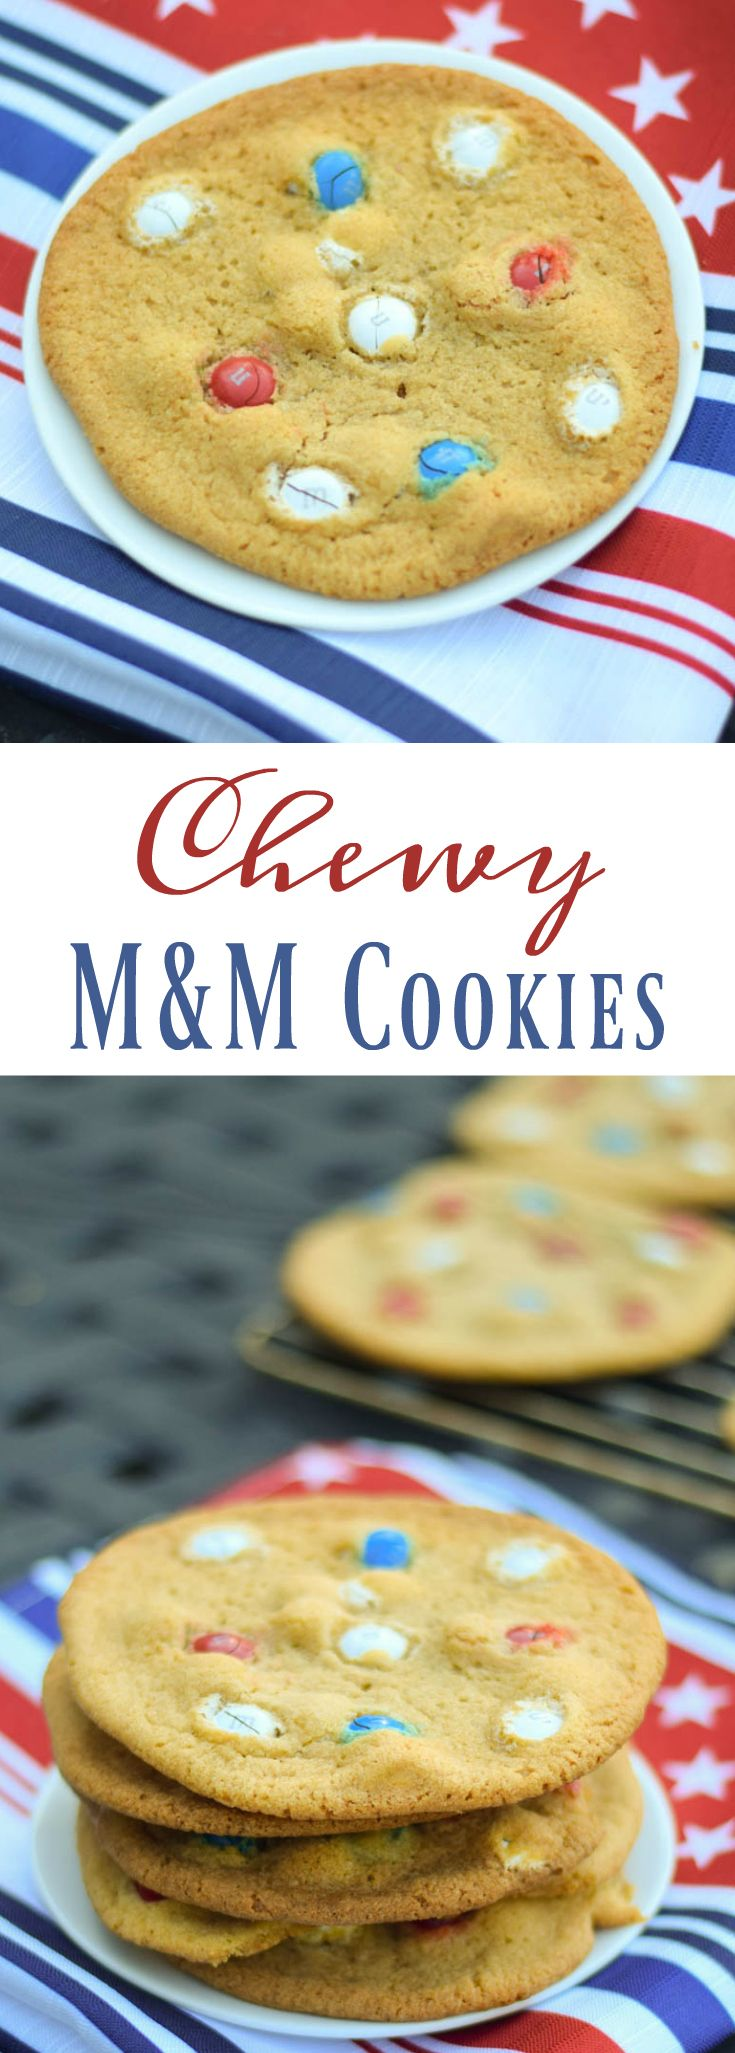 Chewy M&M Cookies and 40+ Easy to Make Recipes for July 4th with #SundaySupper